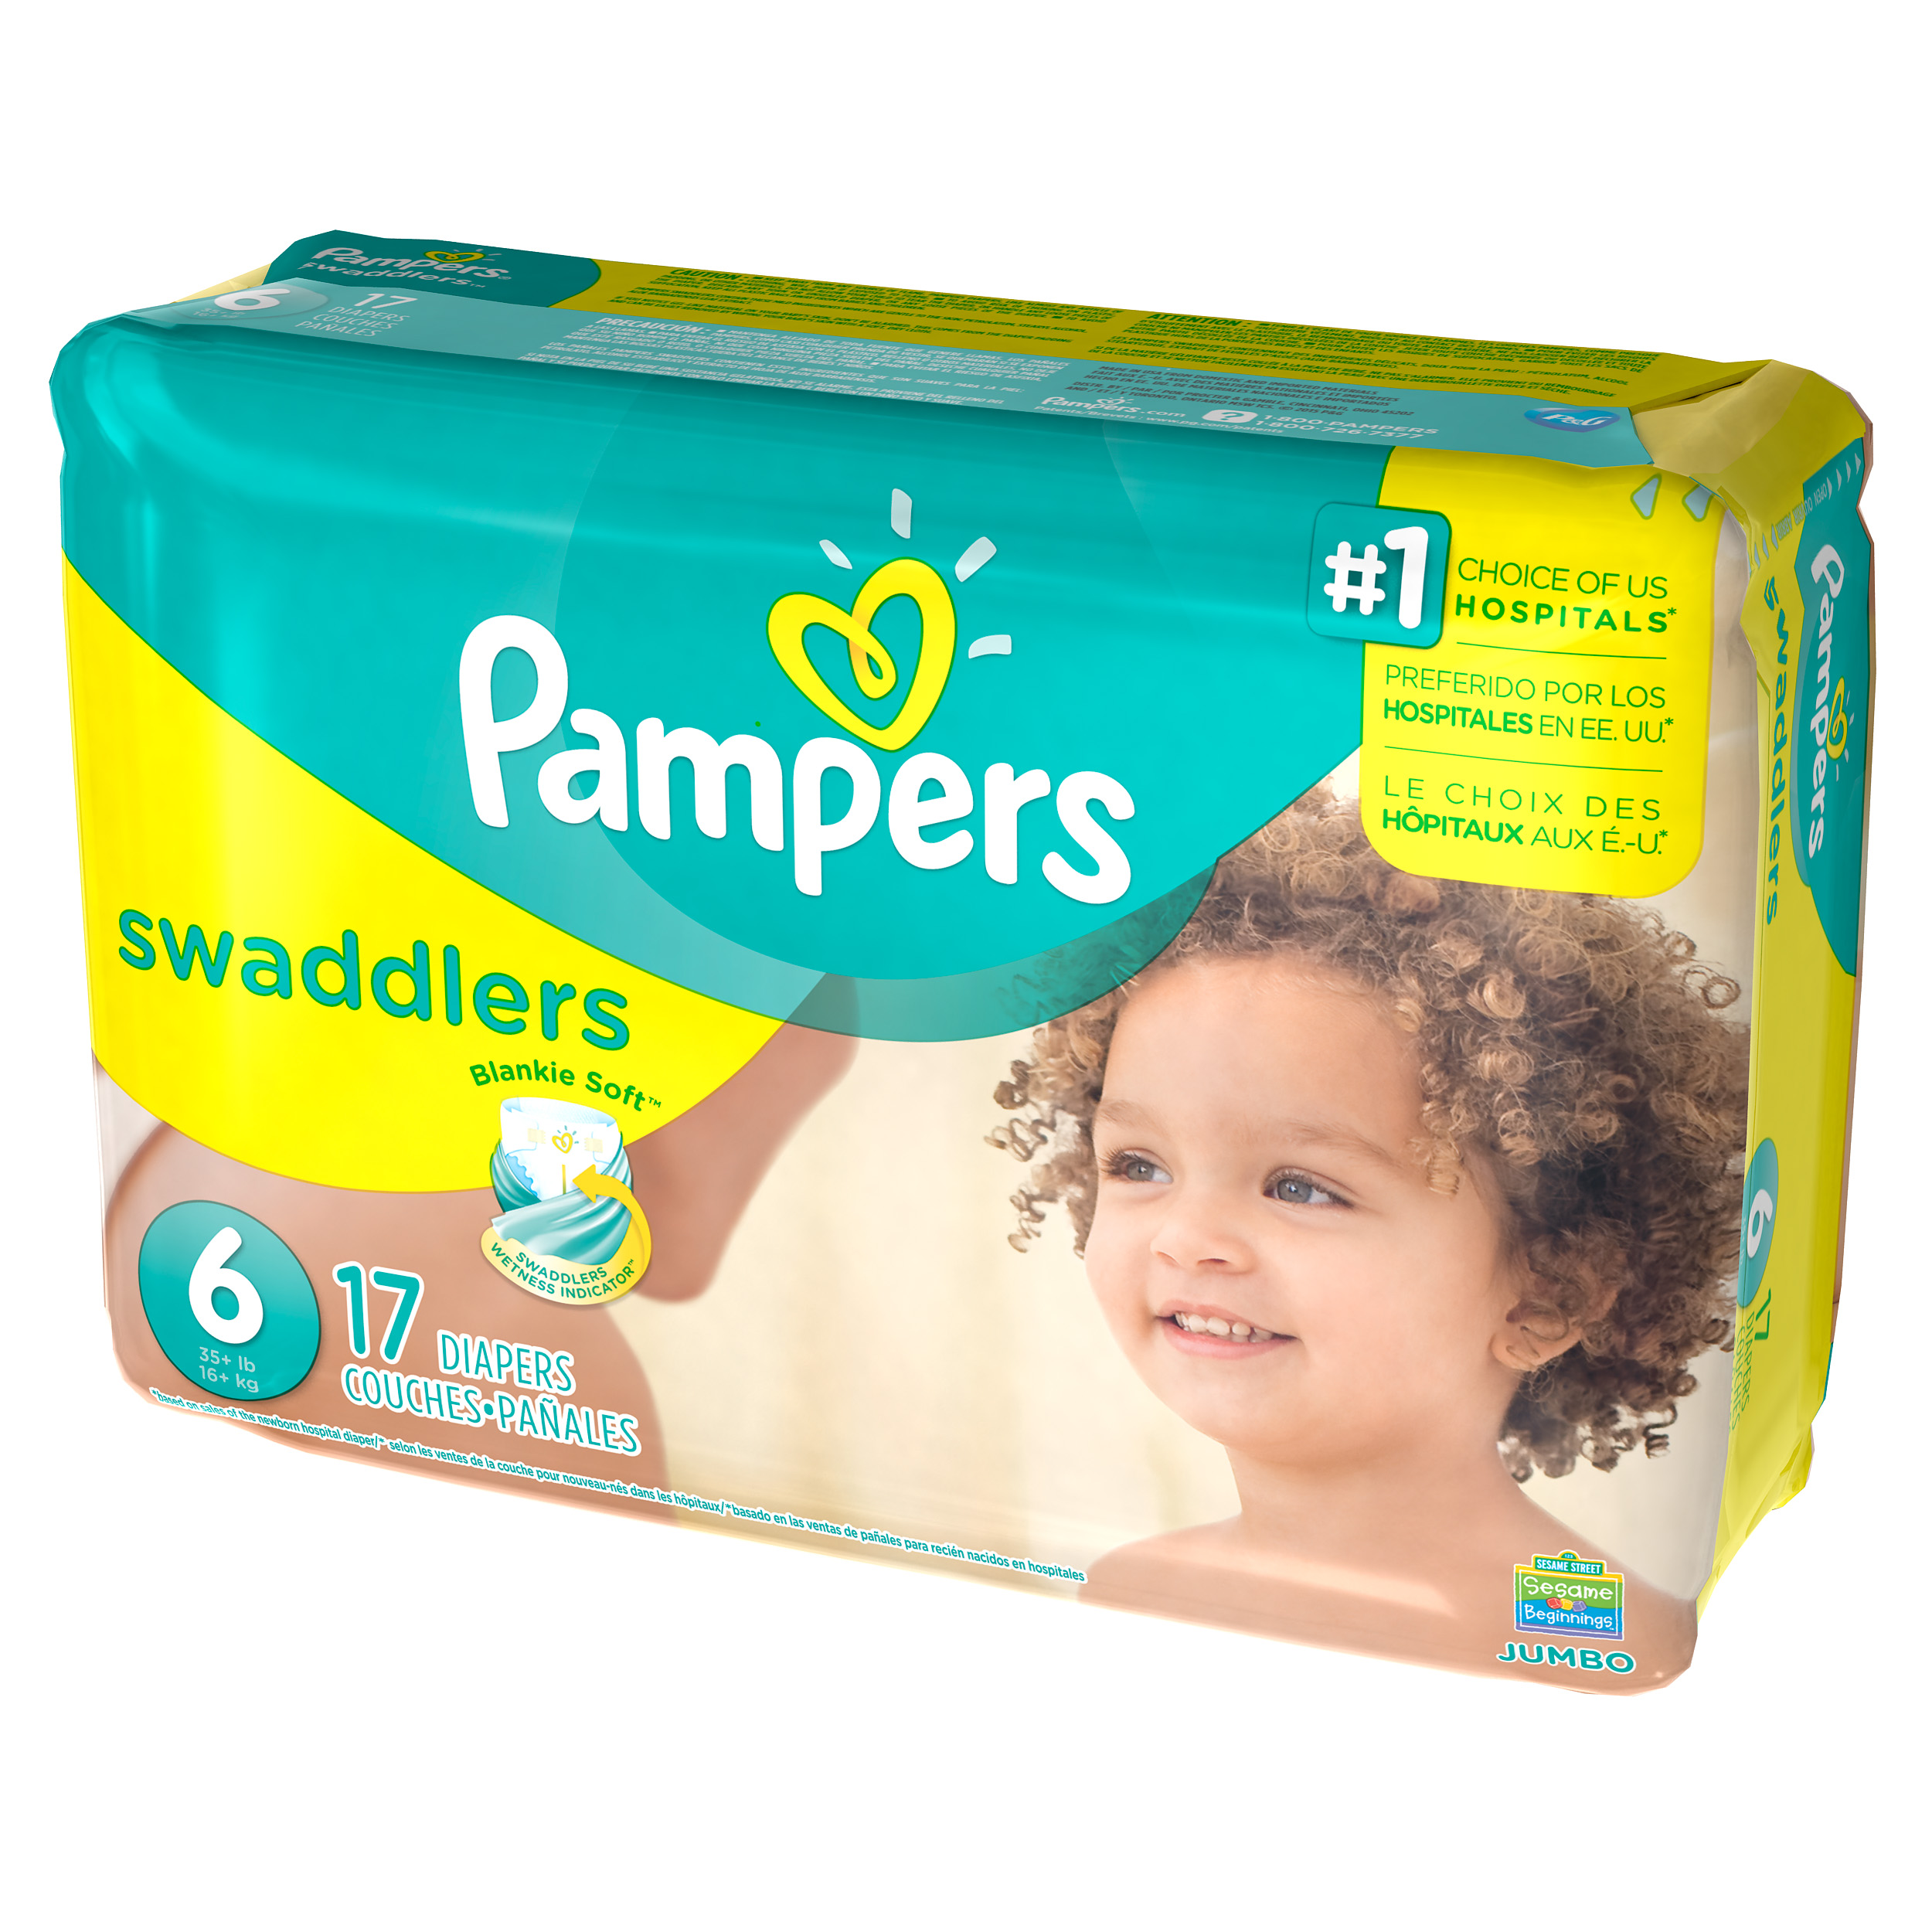 Pampers Swaddlers Diapers Size 6 17 count